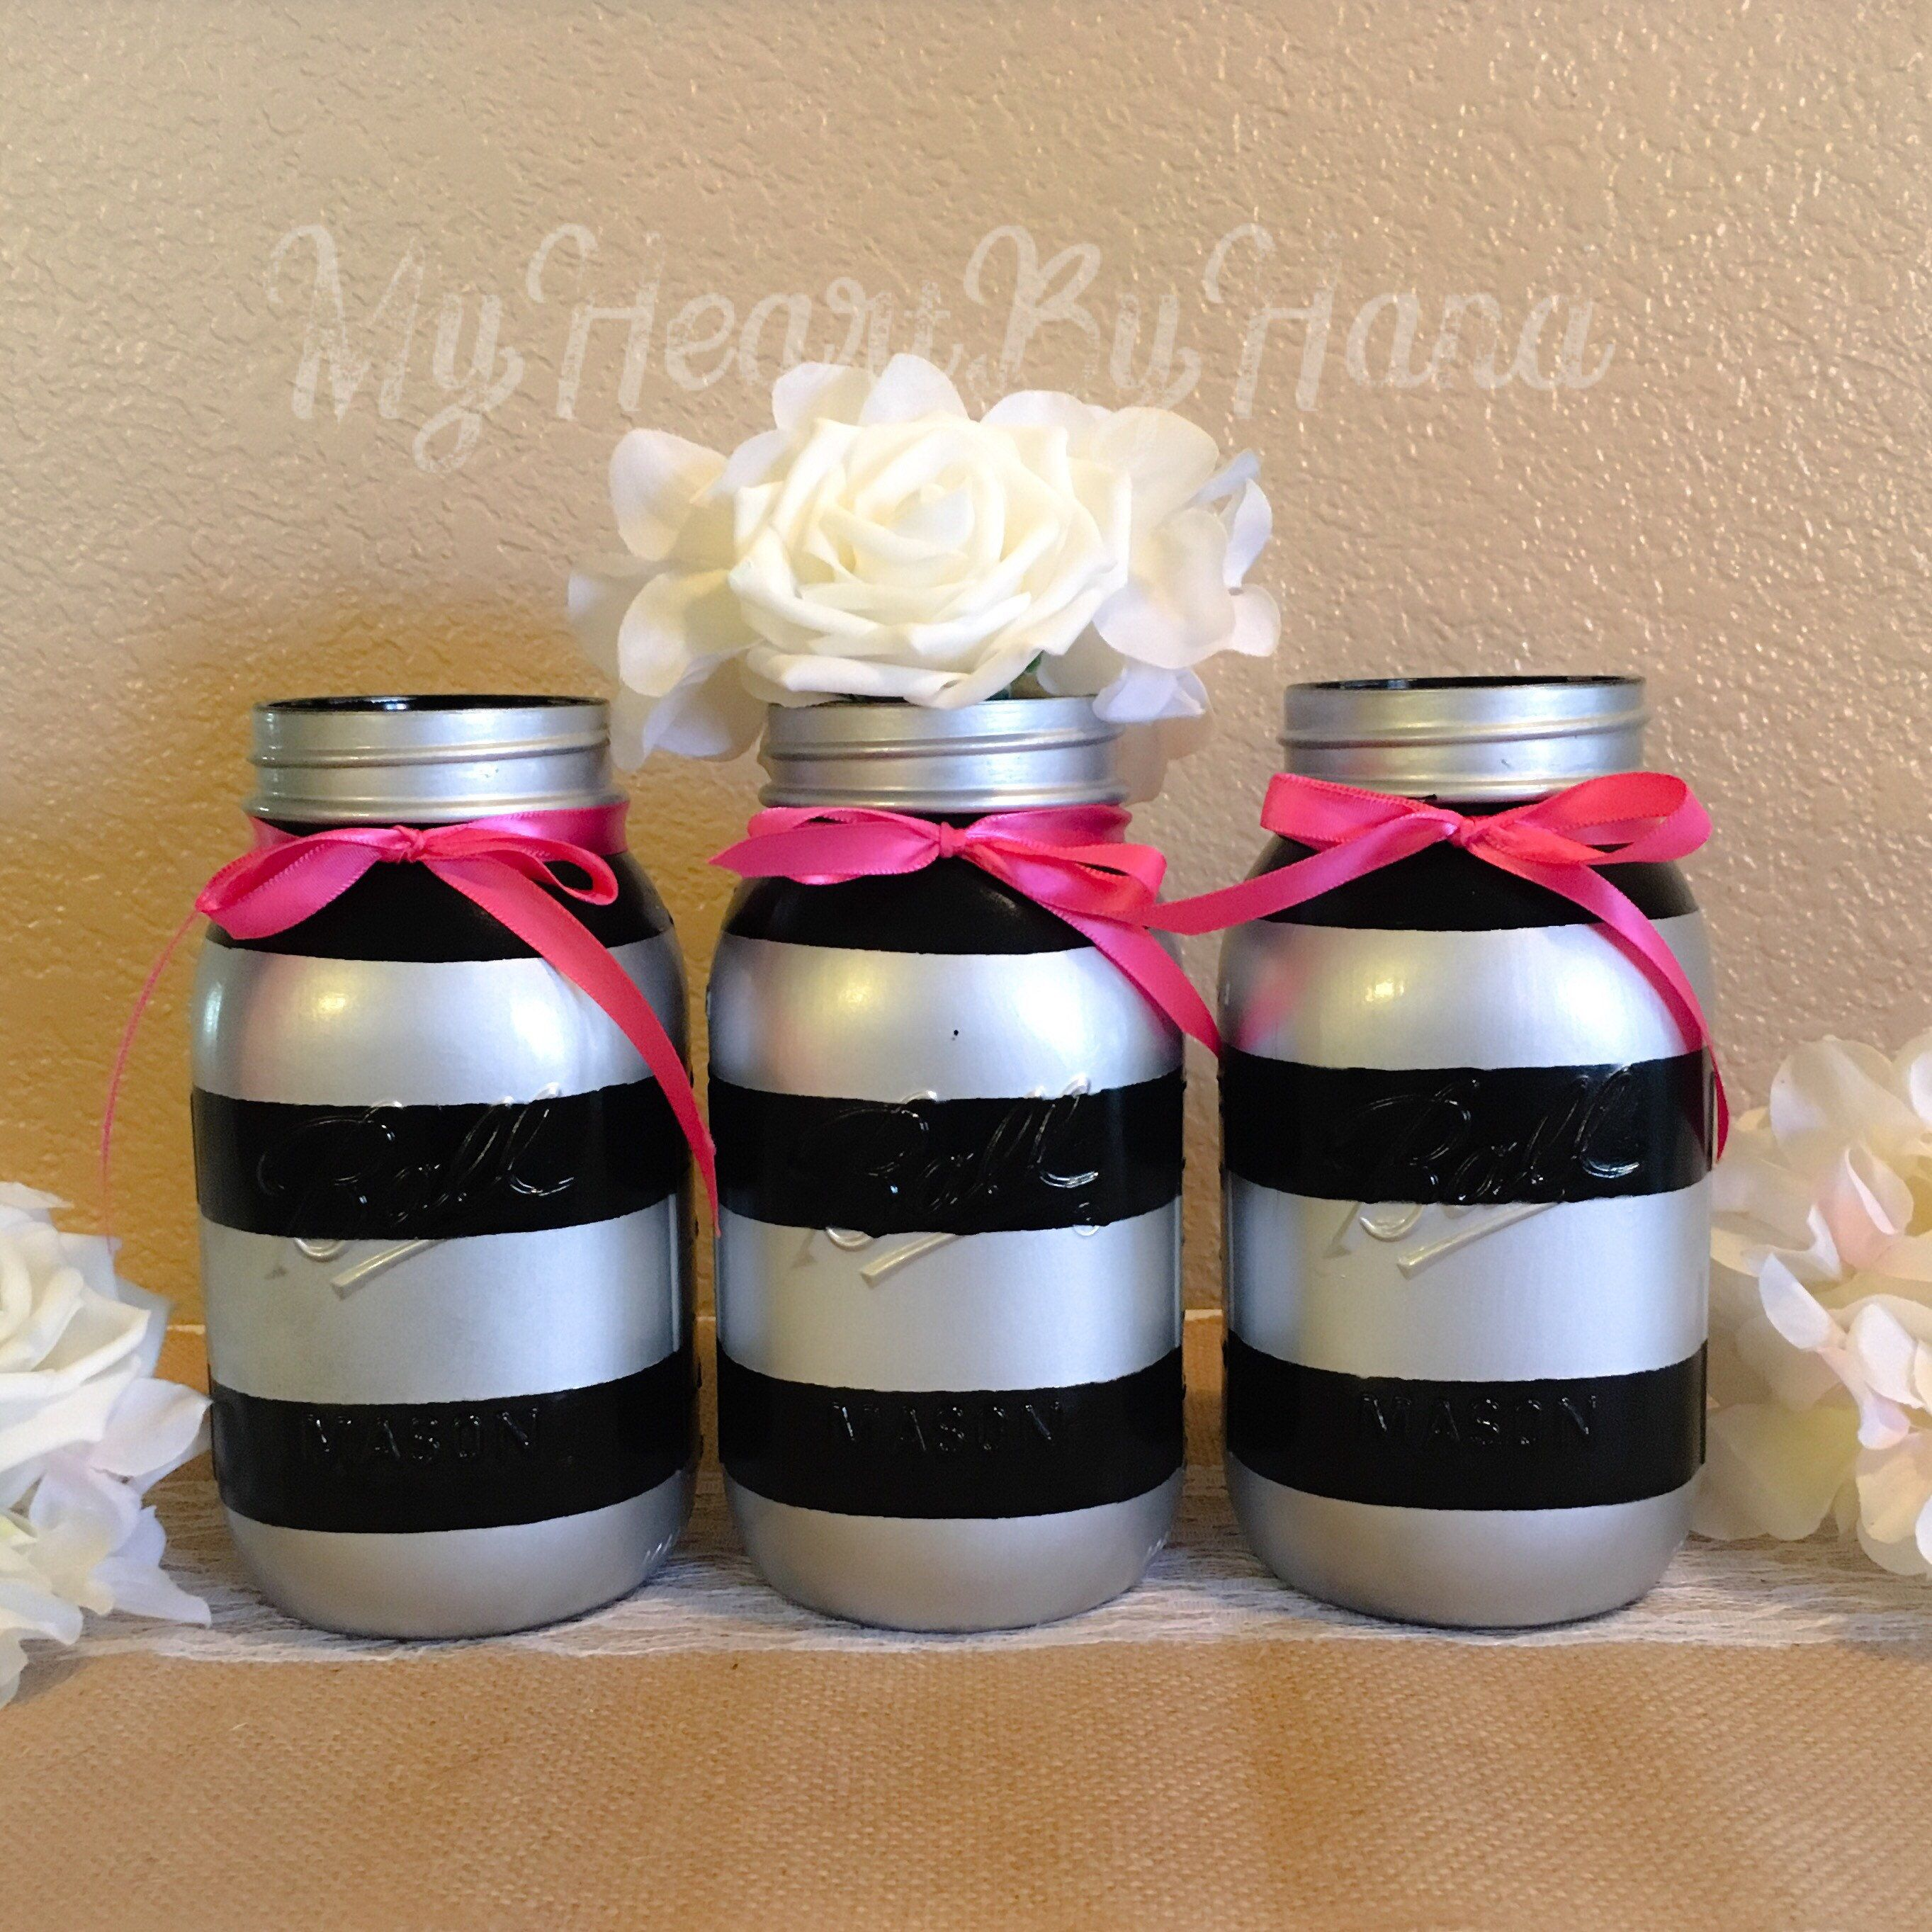 Baby shower decorations black and pink centerpieces bridal shower